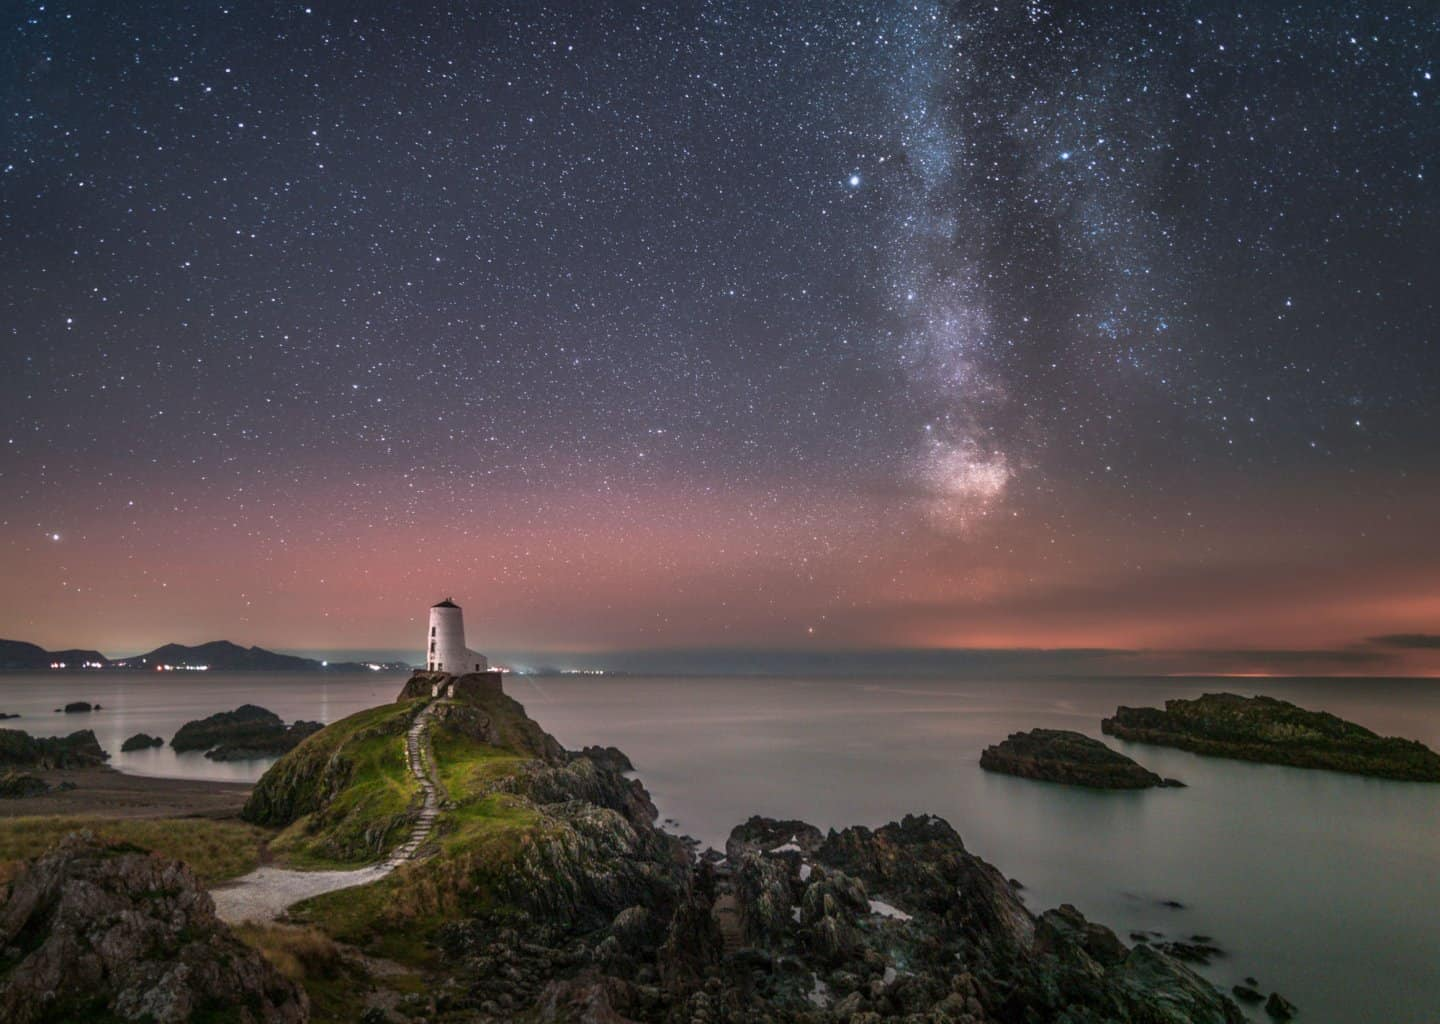 The Llandwyn Island Lighthouse is one of the best places for night photography near Snowdonia.